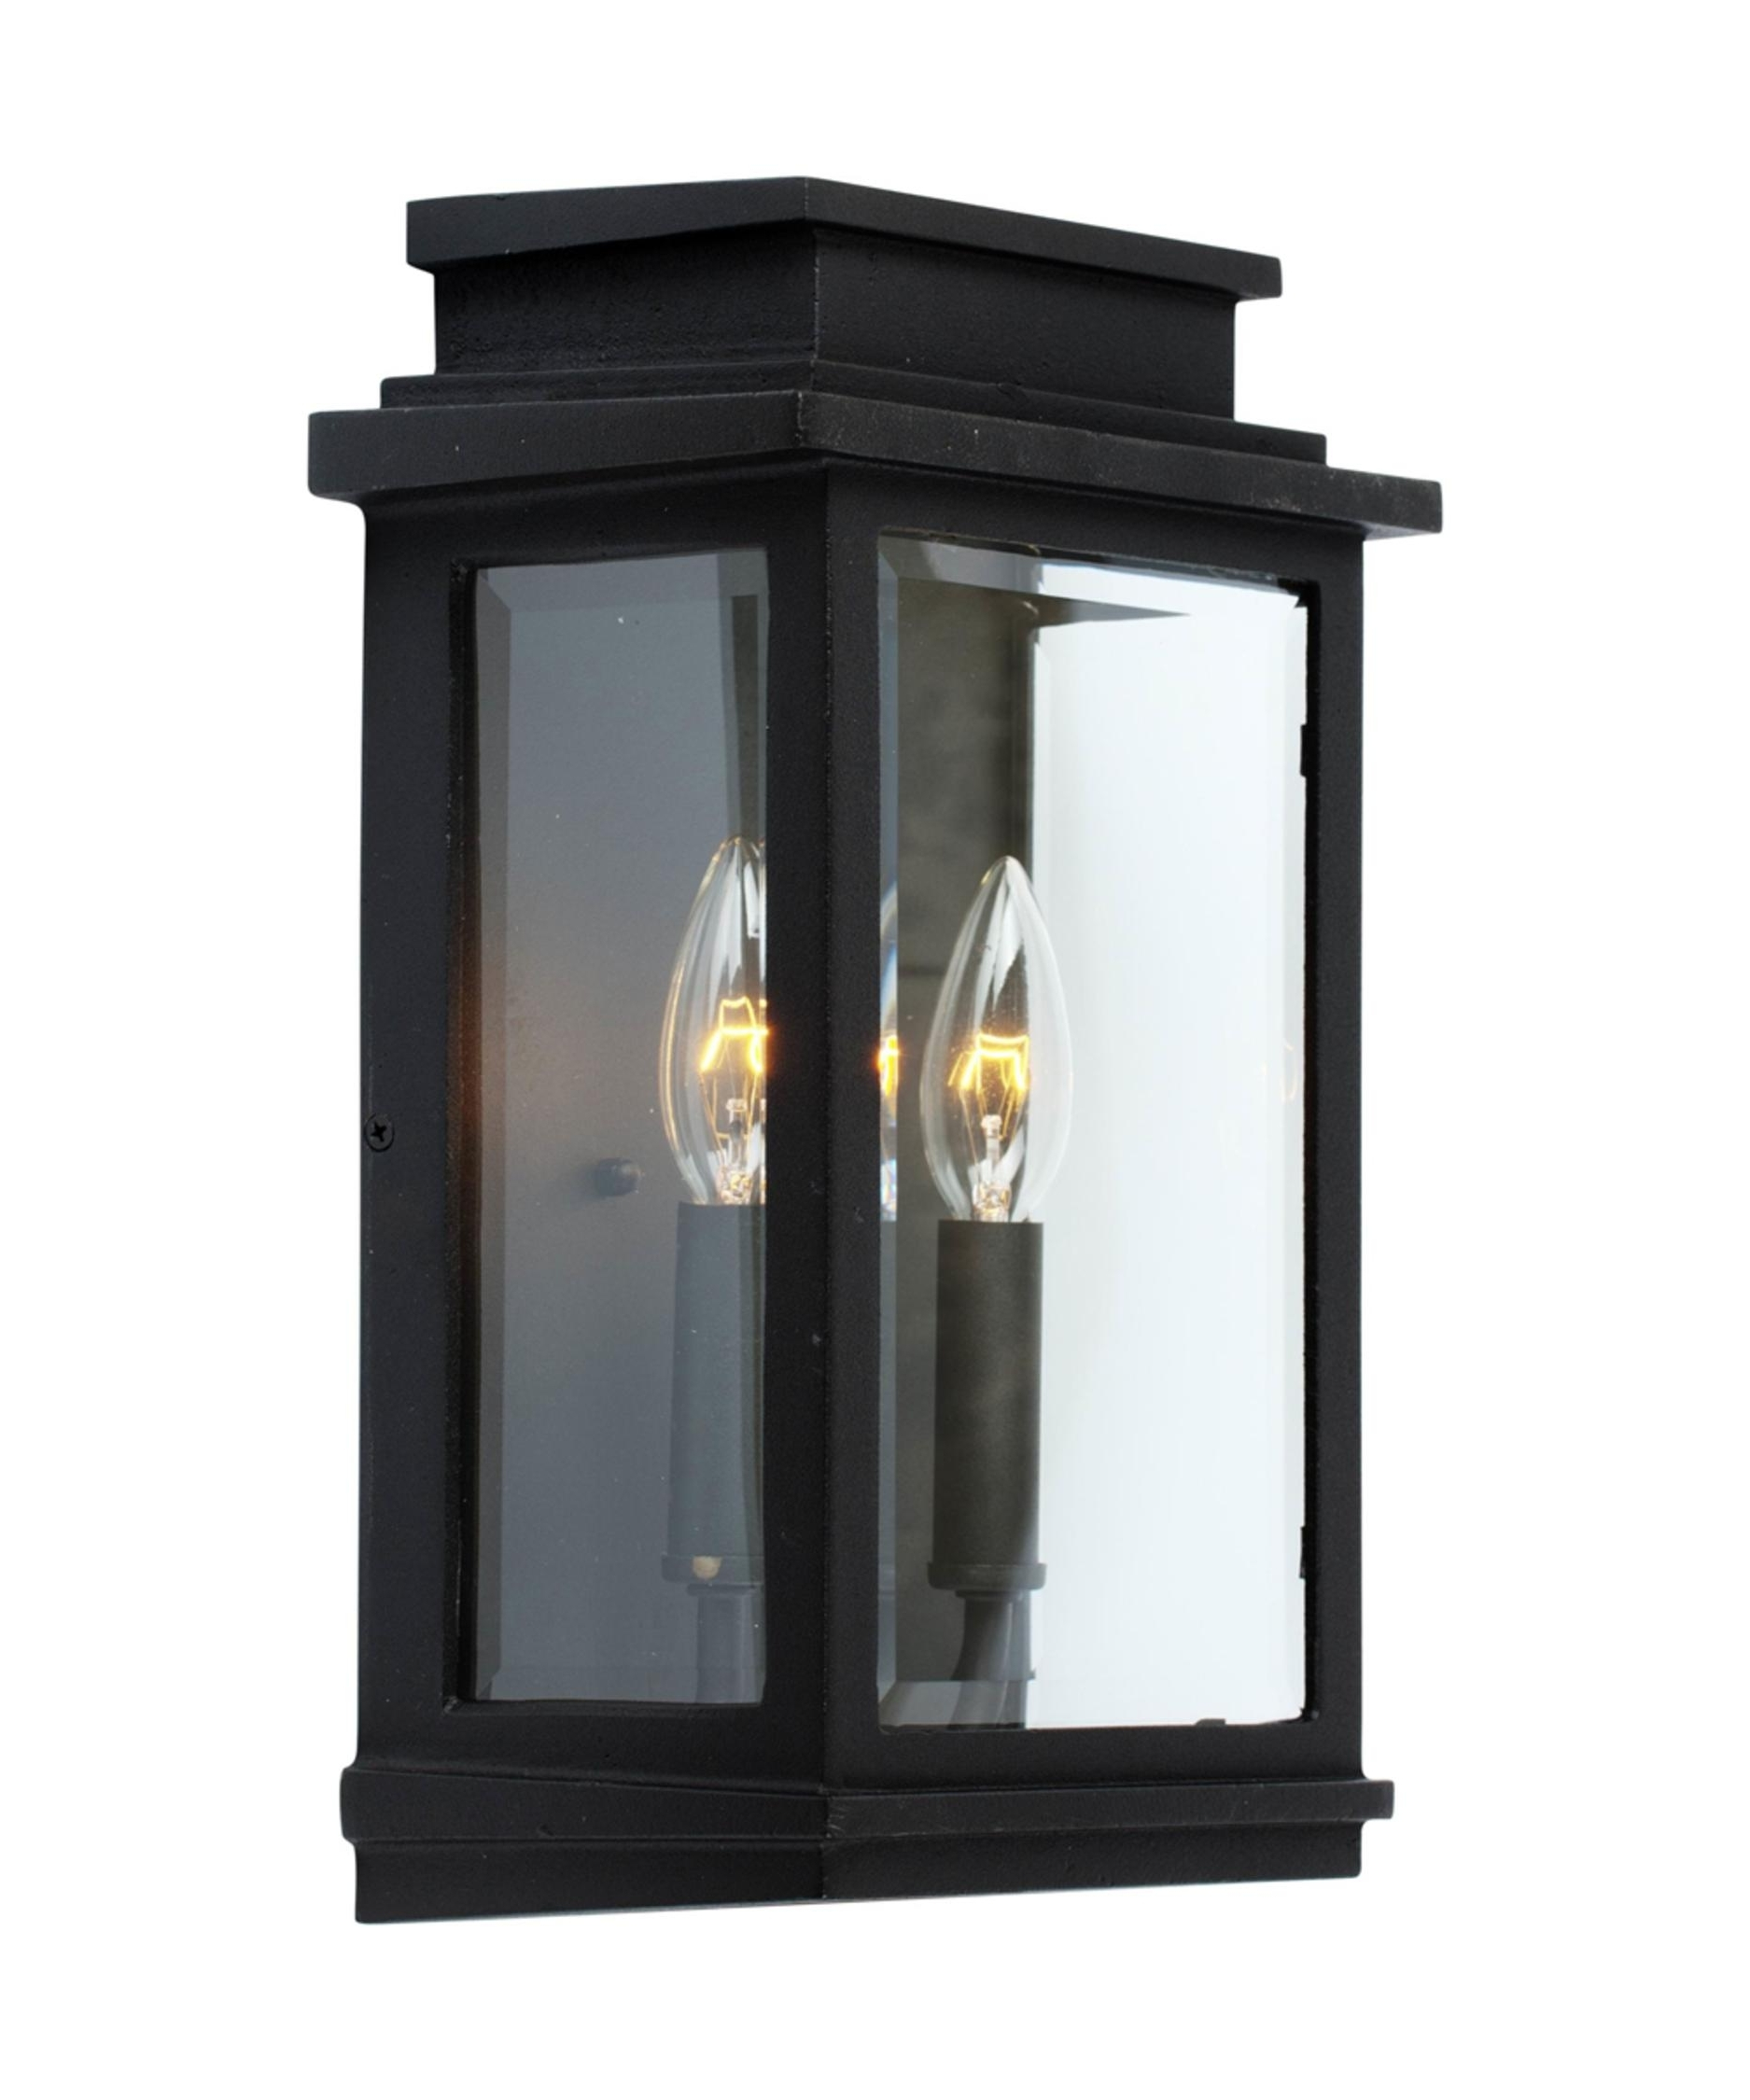 Trendy Black Outdoor Wall Lighting With Artcraft Ac8391 Fremont 9 Inch Wide 2 Light Outdoor Wall Light (View 17 of 20)